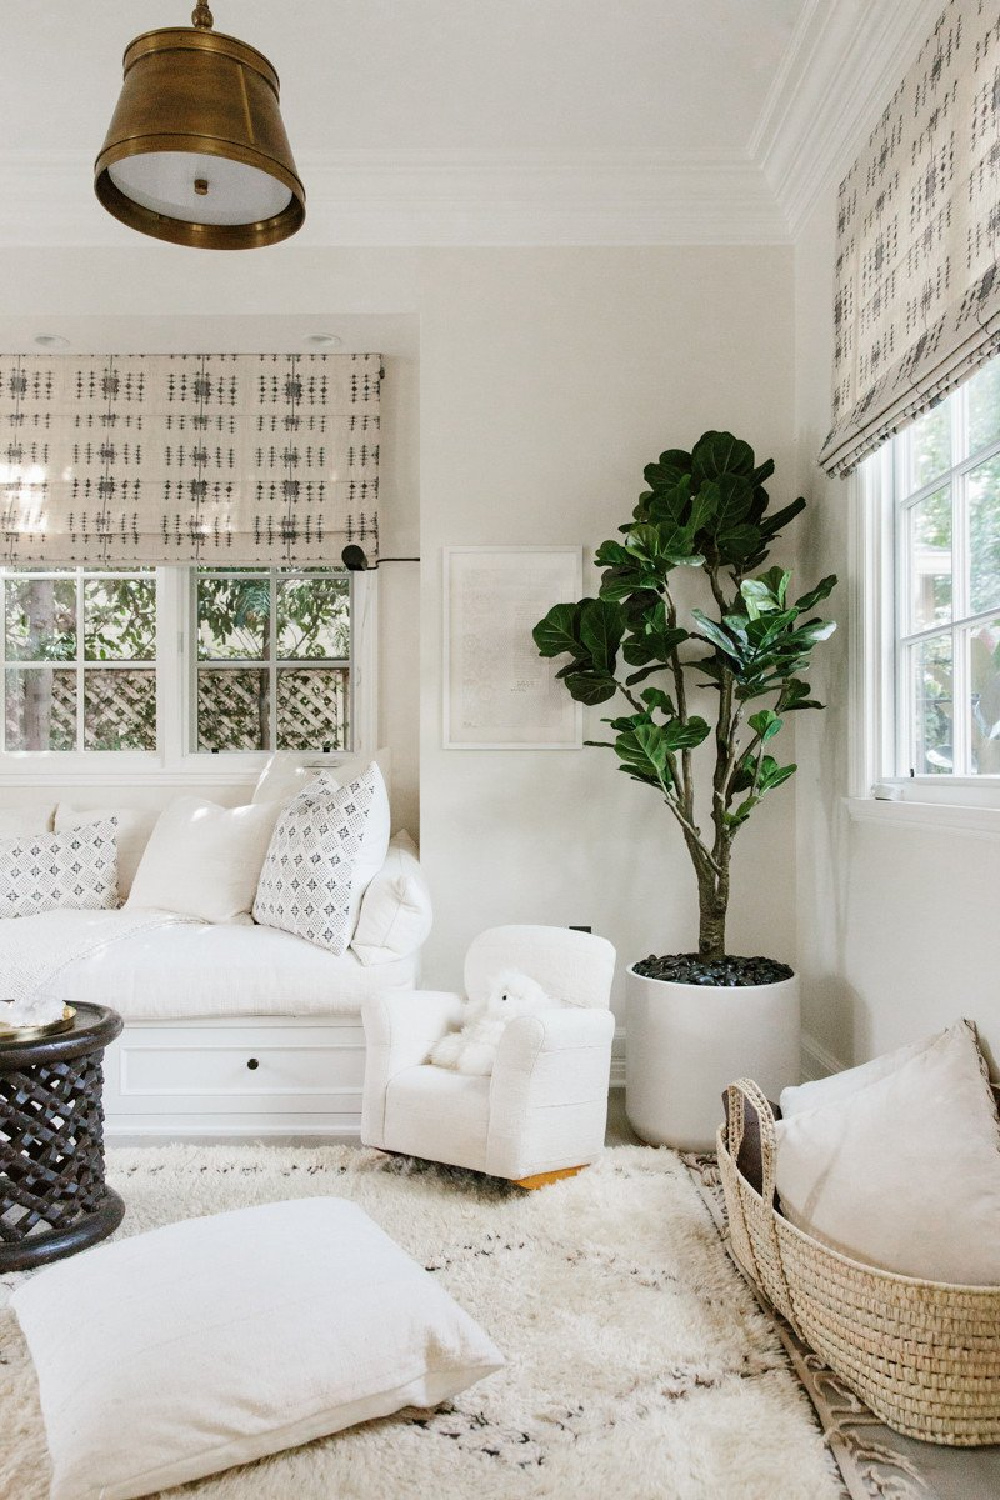 Erin Fetherston boho chic California farmhouse decor with mud cloth and Moroccan rug. #modernfarmhouse #interiordesign #erinfetherston #whitedecor